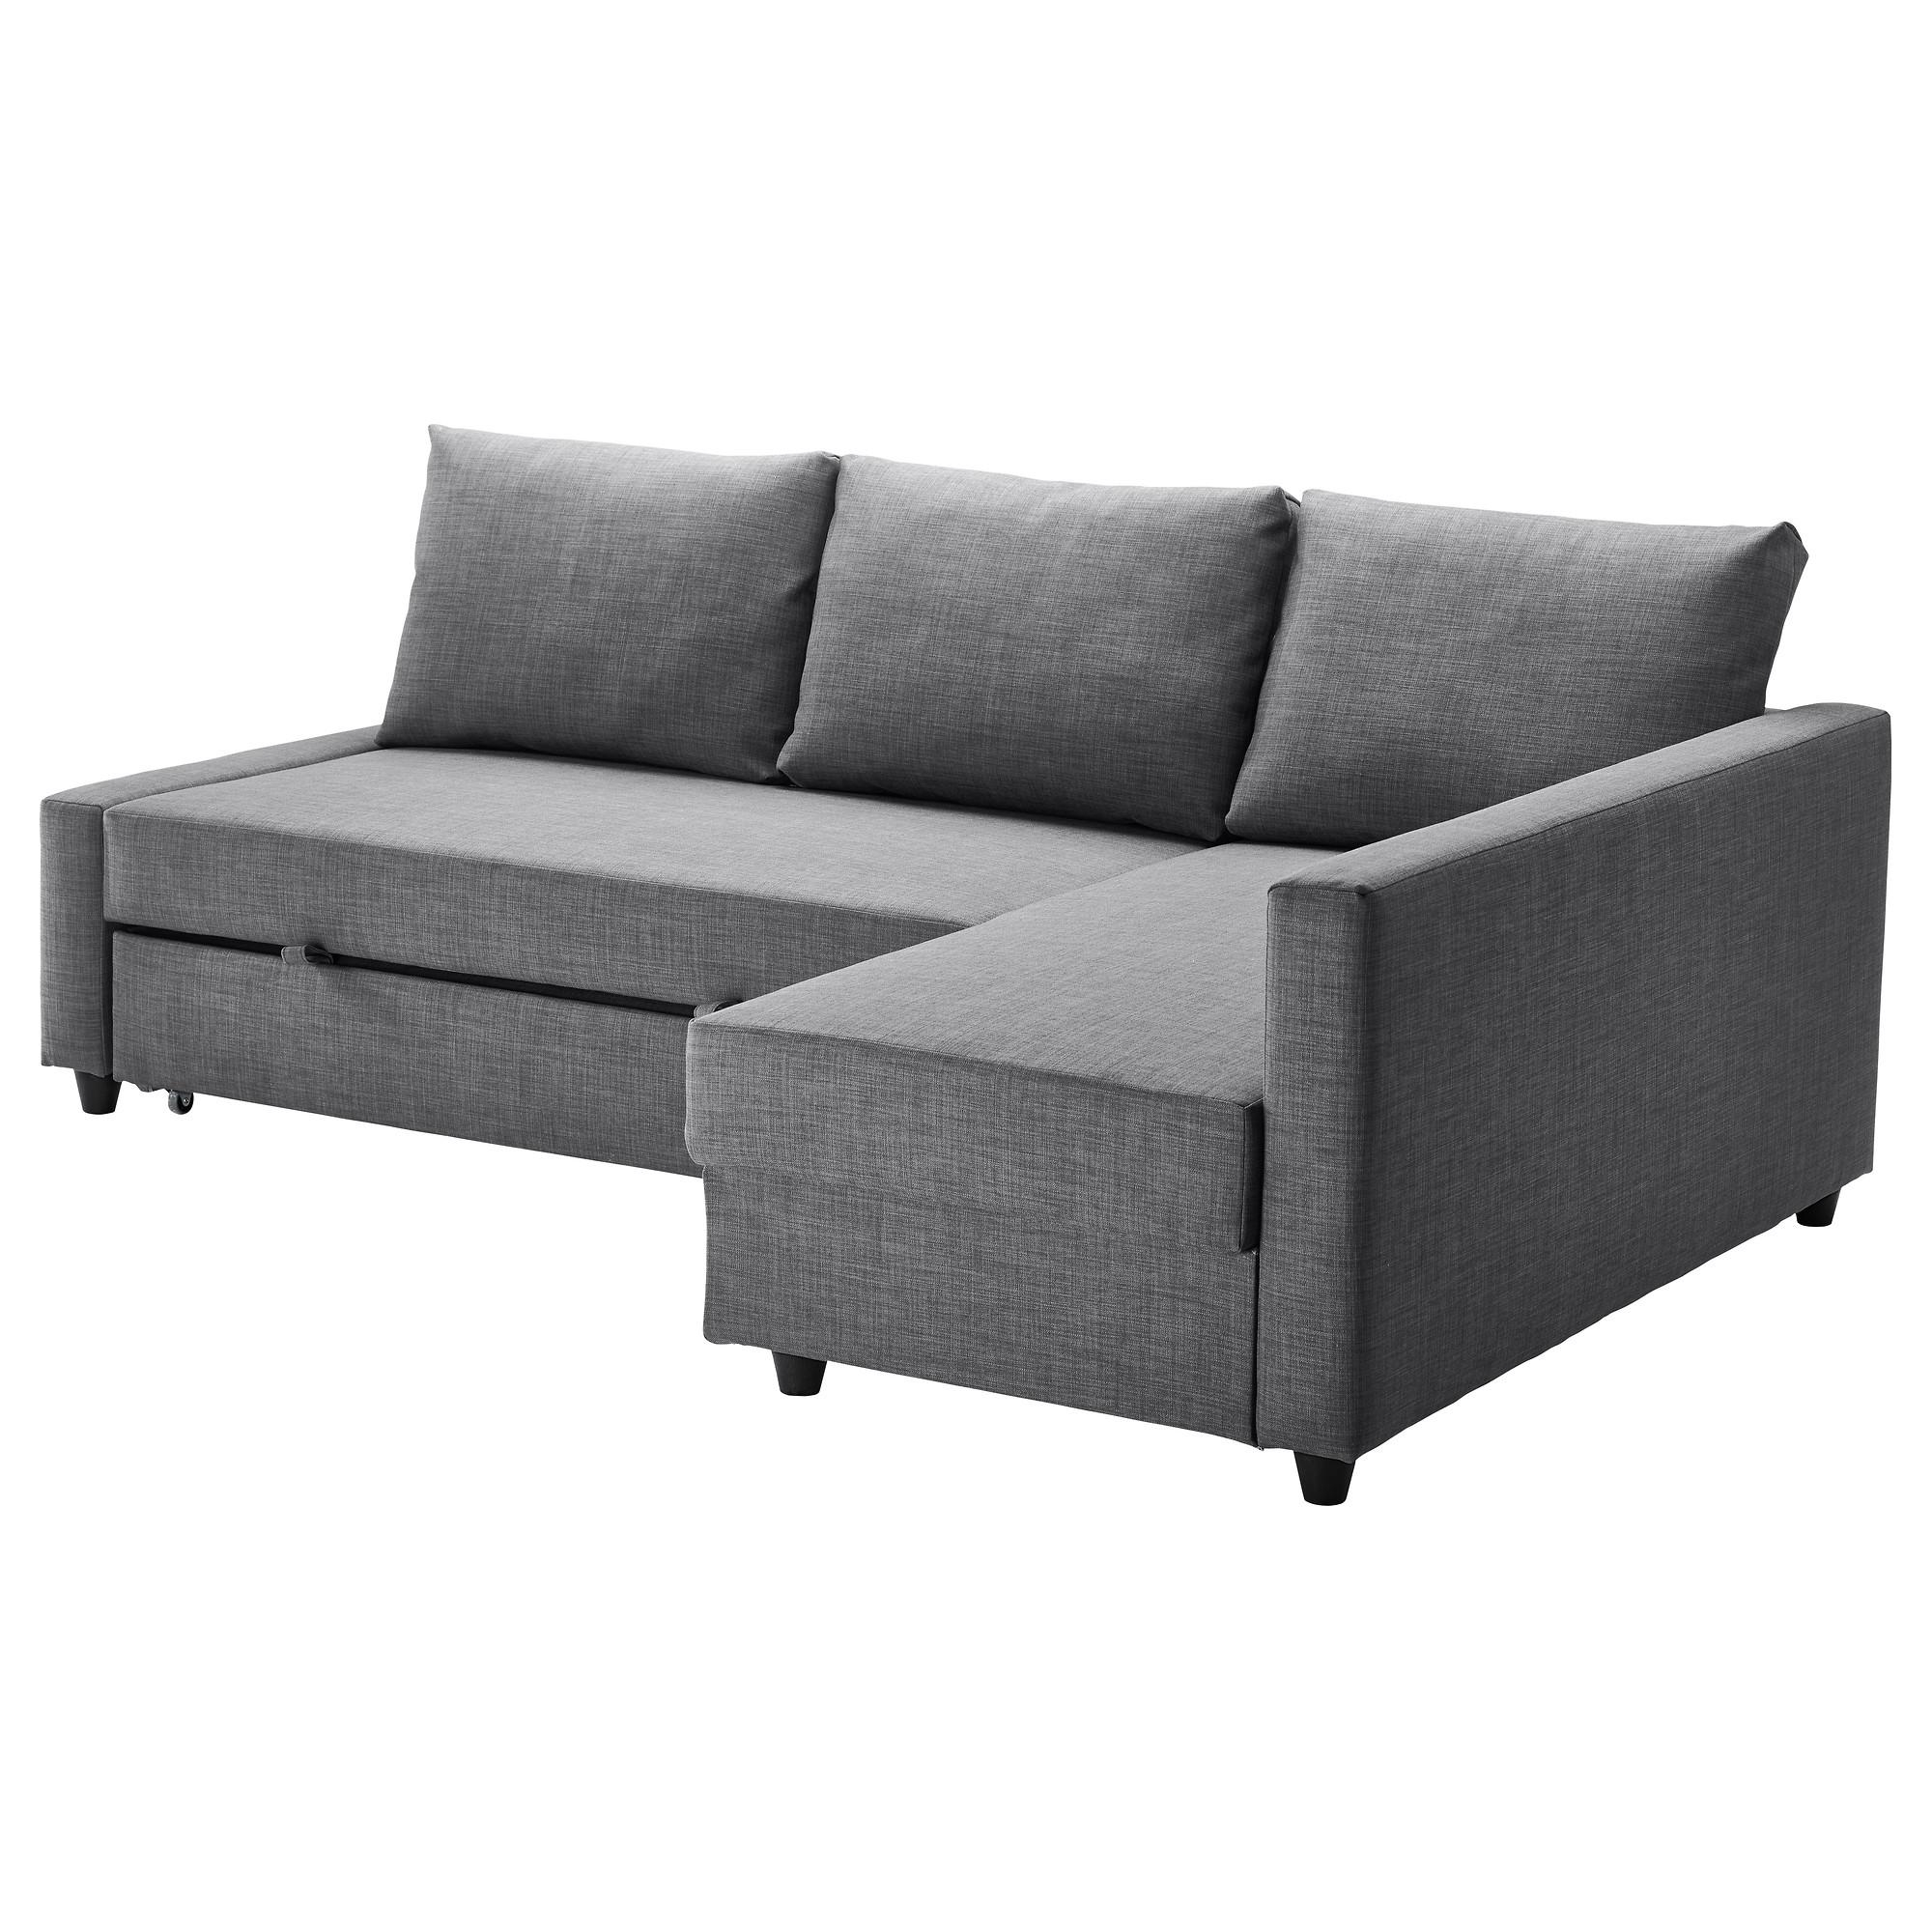 Sofa Beds & Futons – Ikea Inside Ikea Sleeper Sofa Sectional (Image 14 of 20)